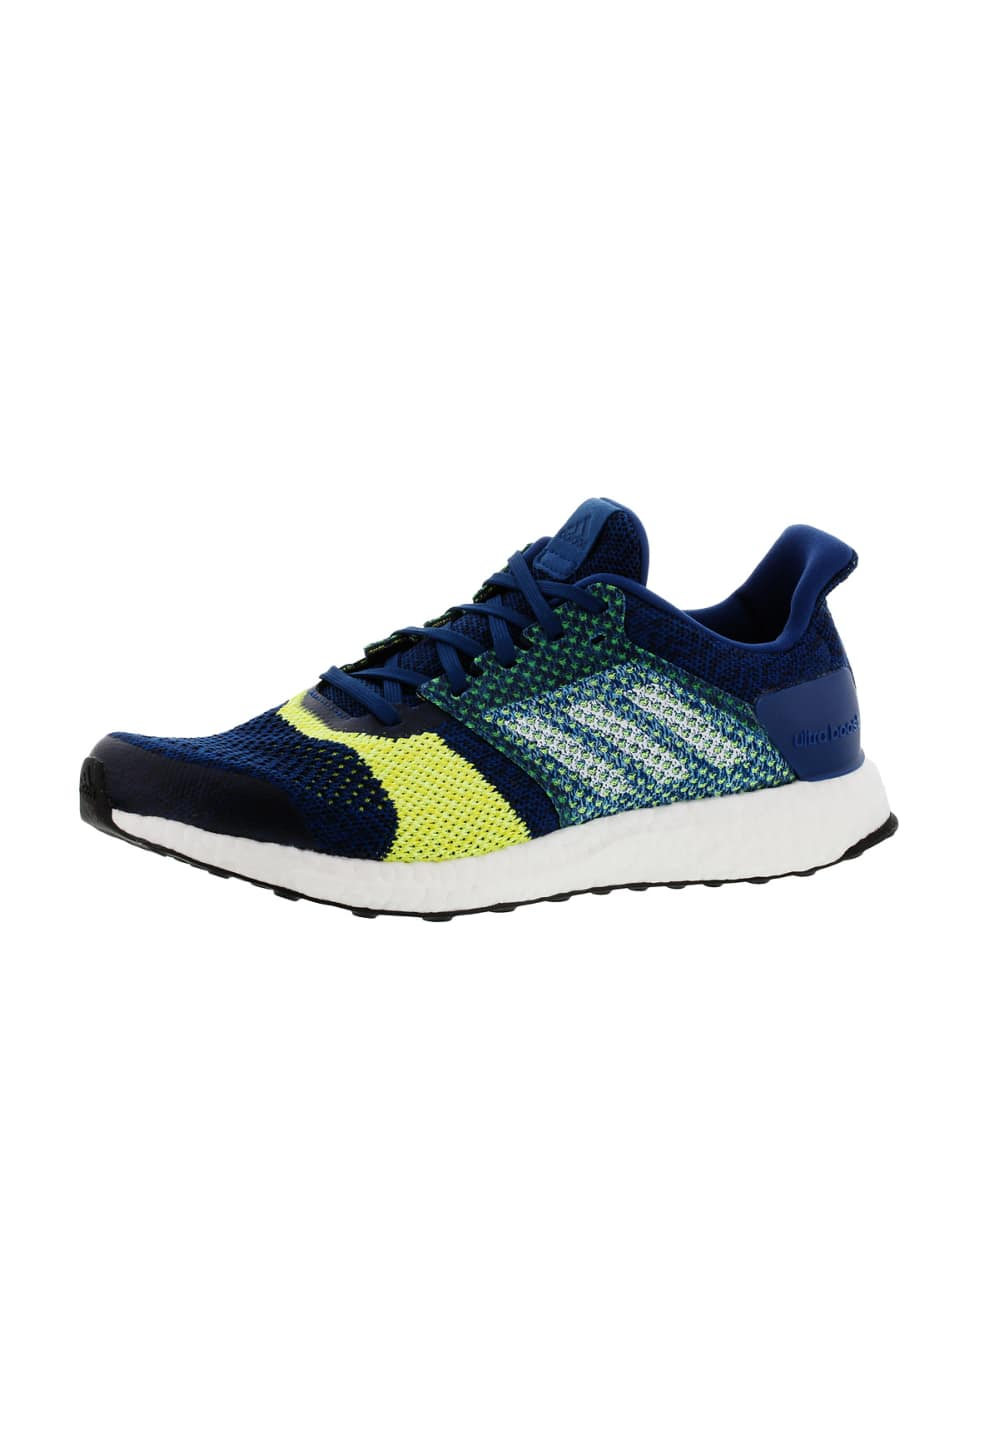 St Chaussures Adidas Pour Bleu Running Homme Ultra Boost fb76gy